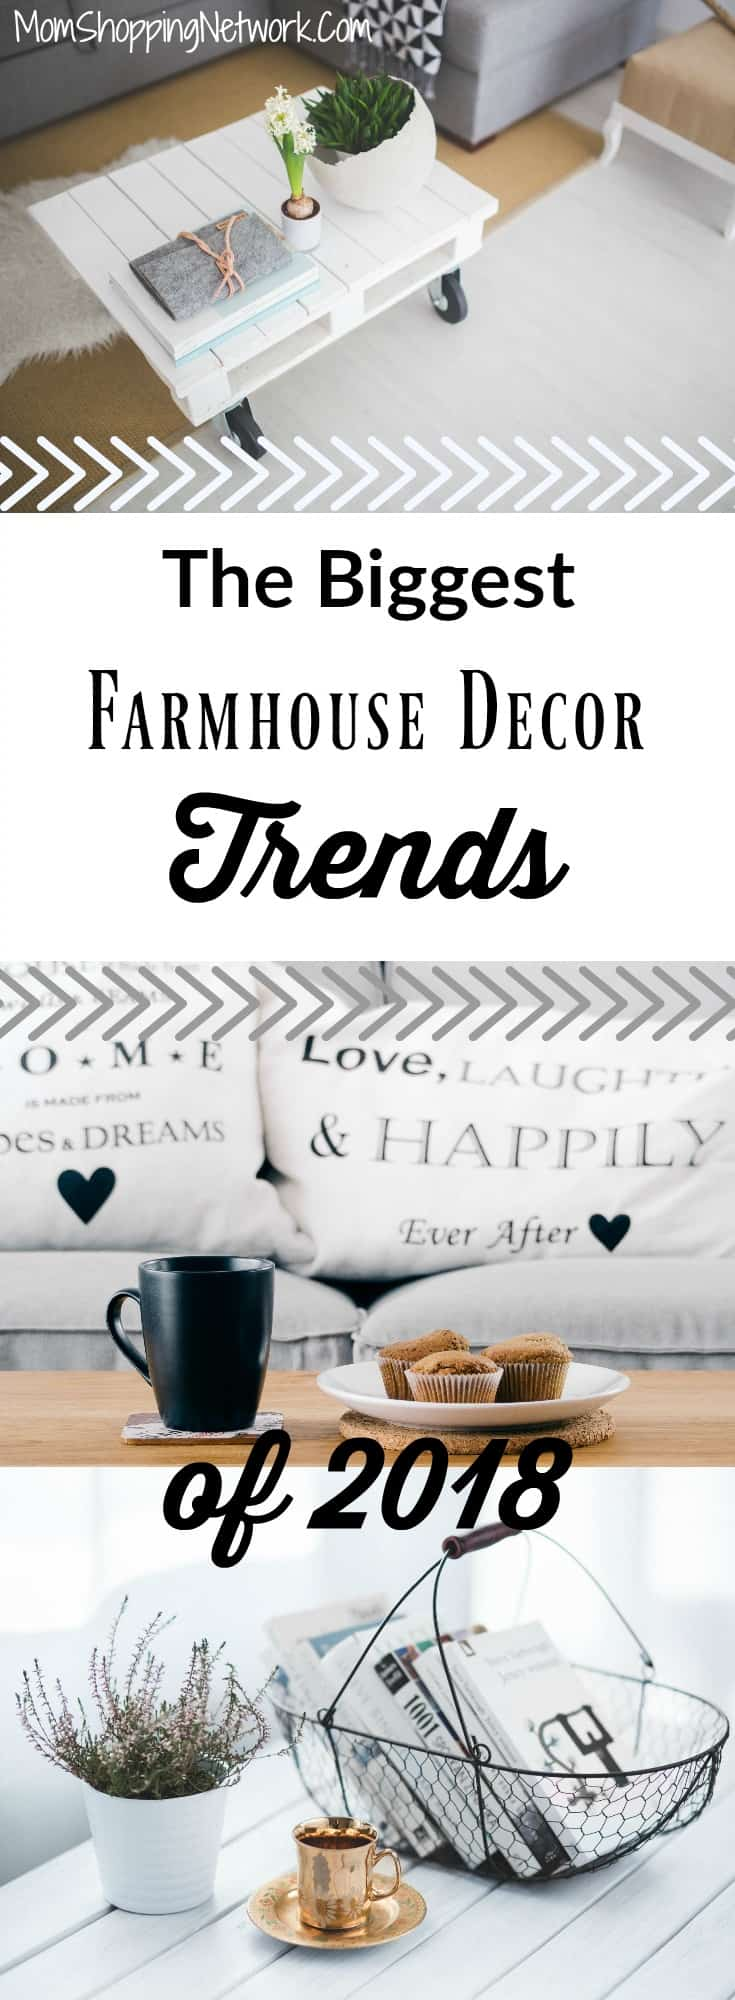 The Biggest Farmhouse Decor Trends of 2018 - The Mom Shopping Network for Biggest Farmhouse  111ane